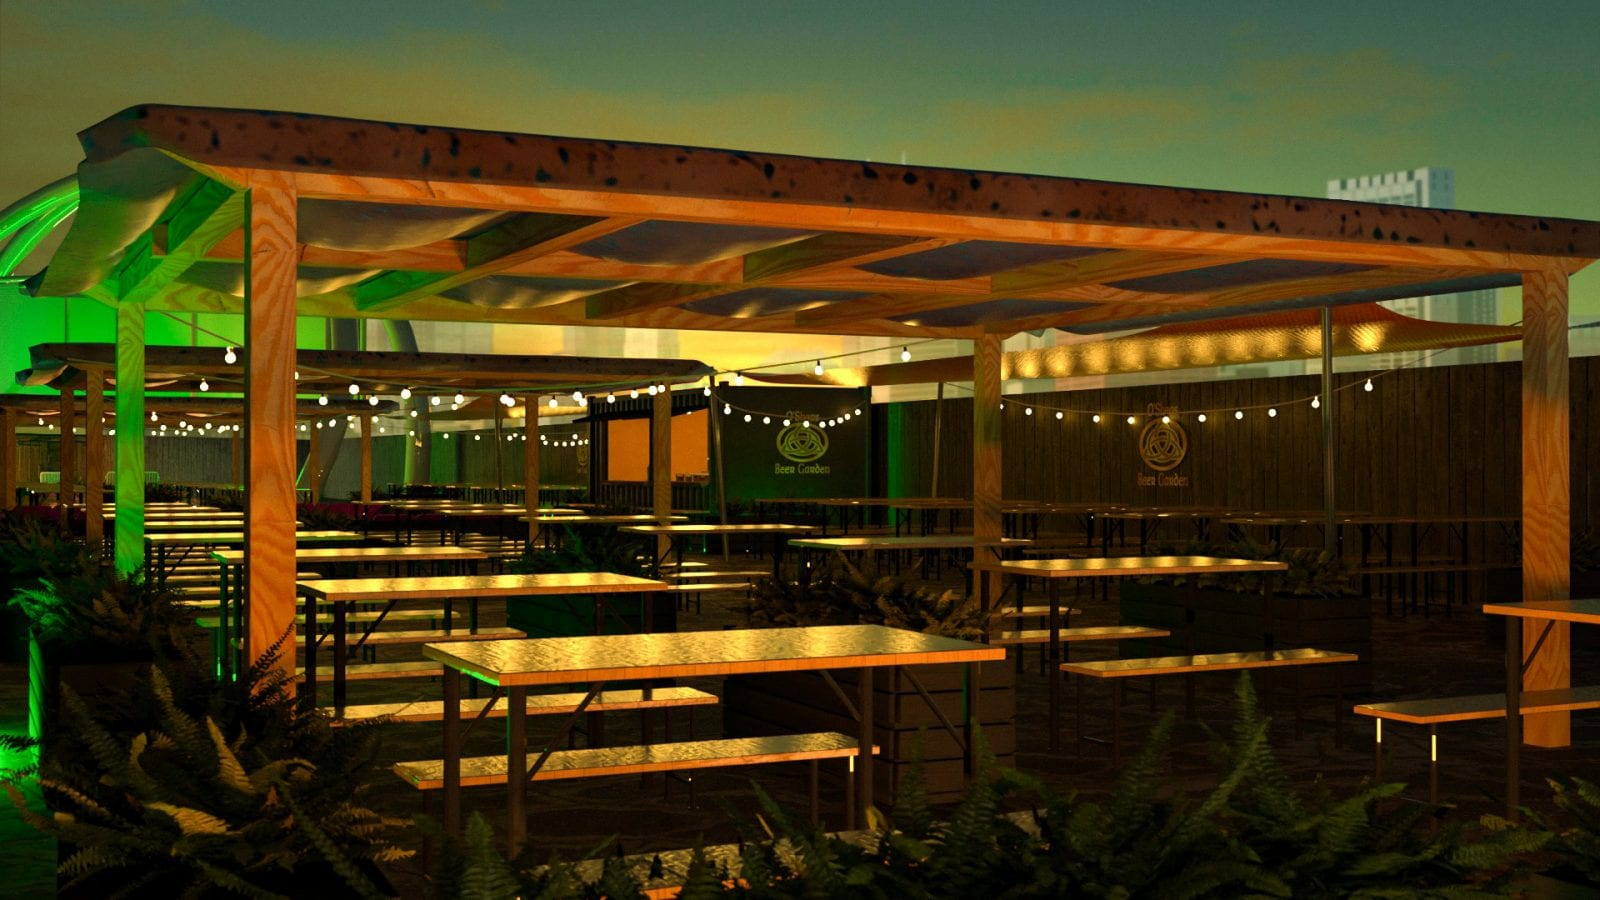 O'Sheas opens brand new beer garden venue in time for April 12, The Manc